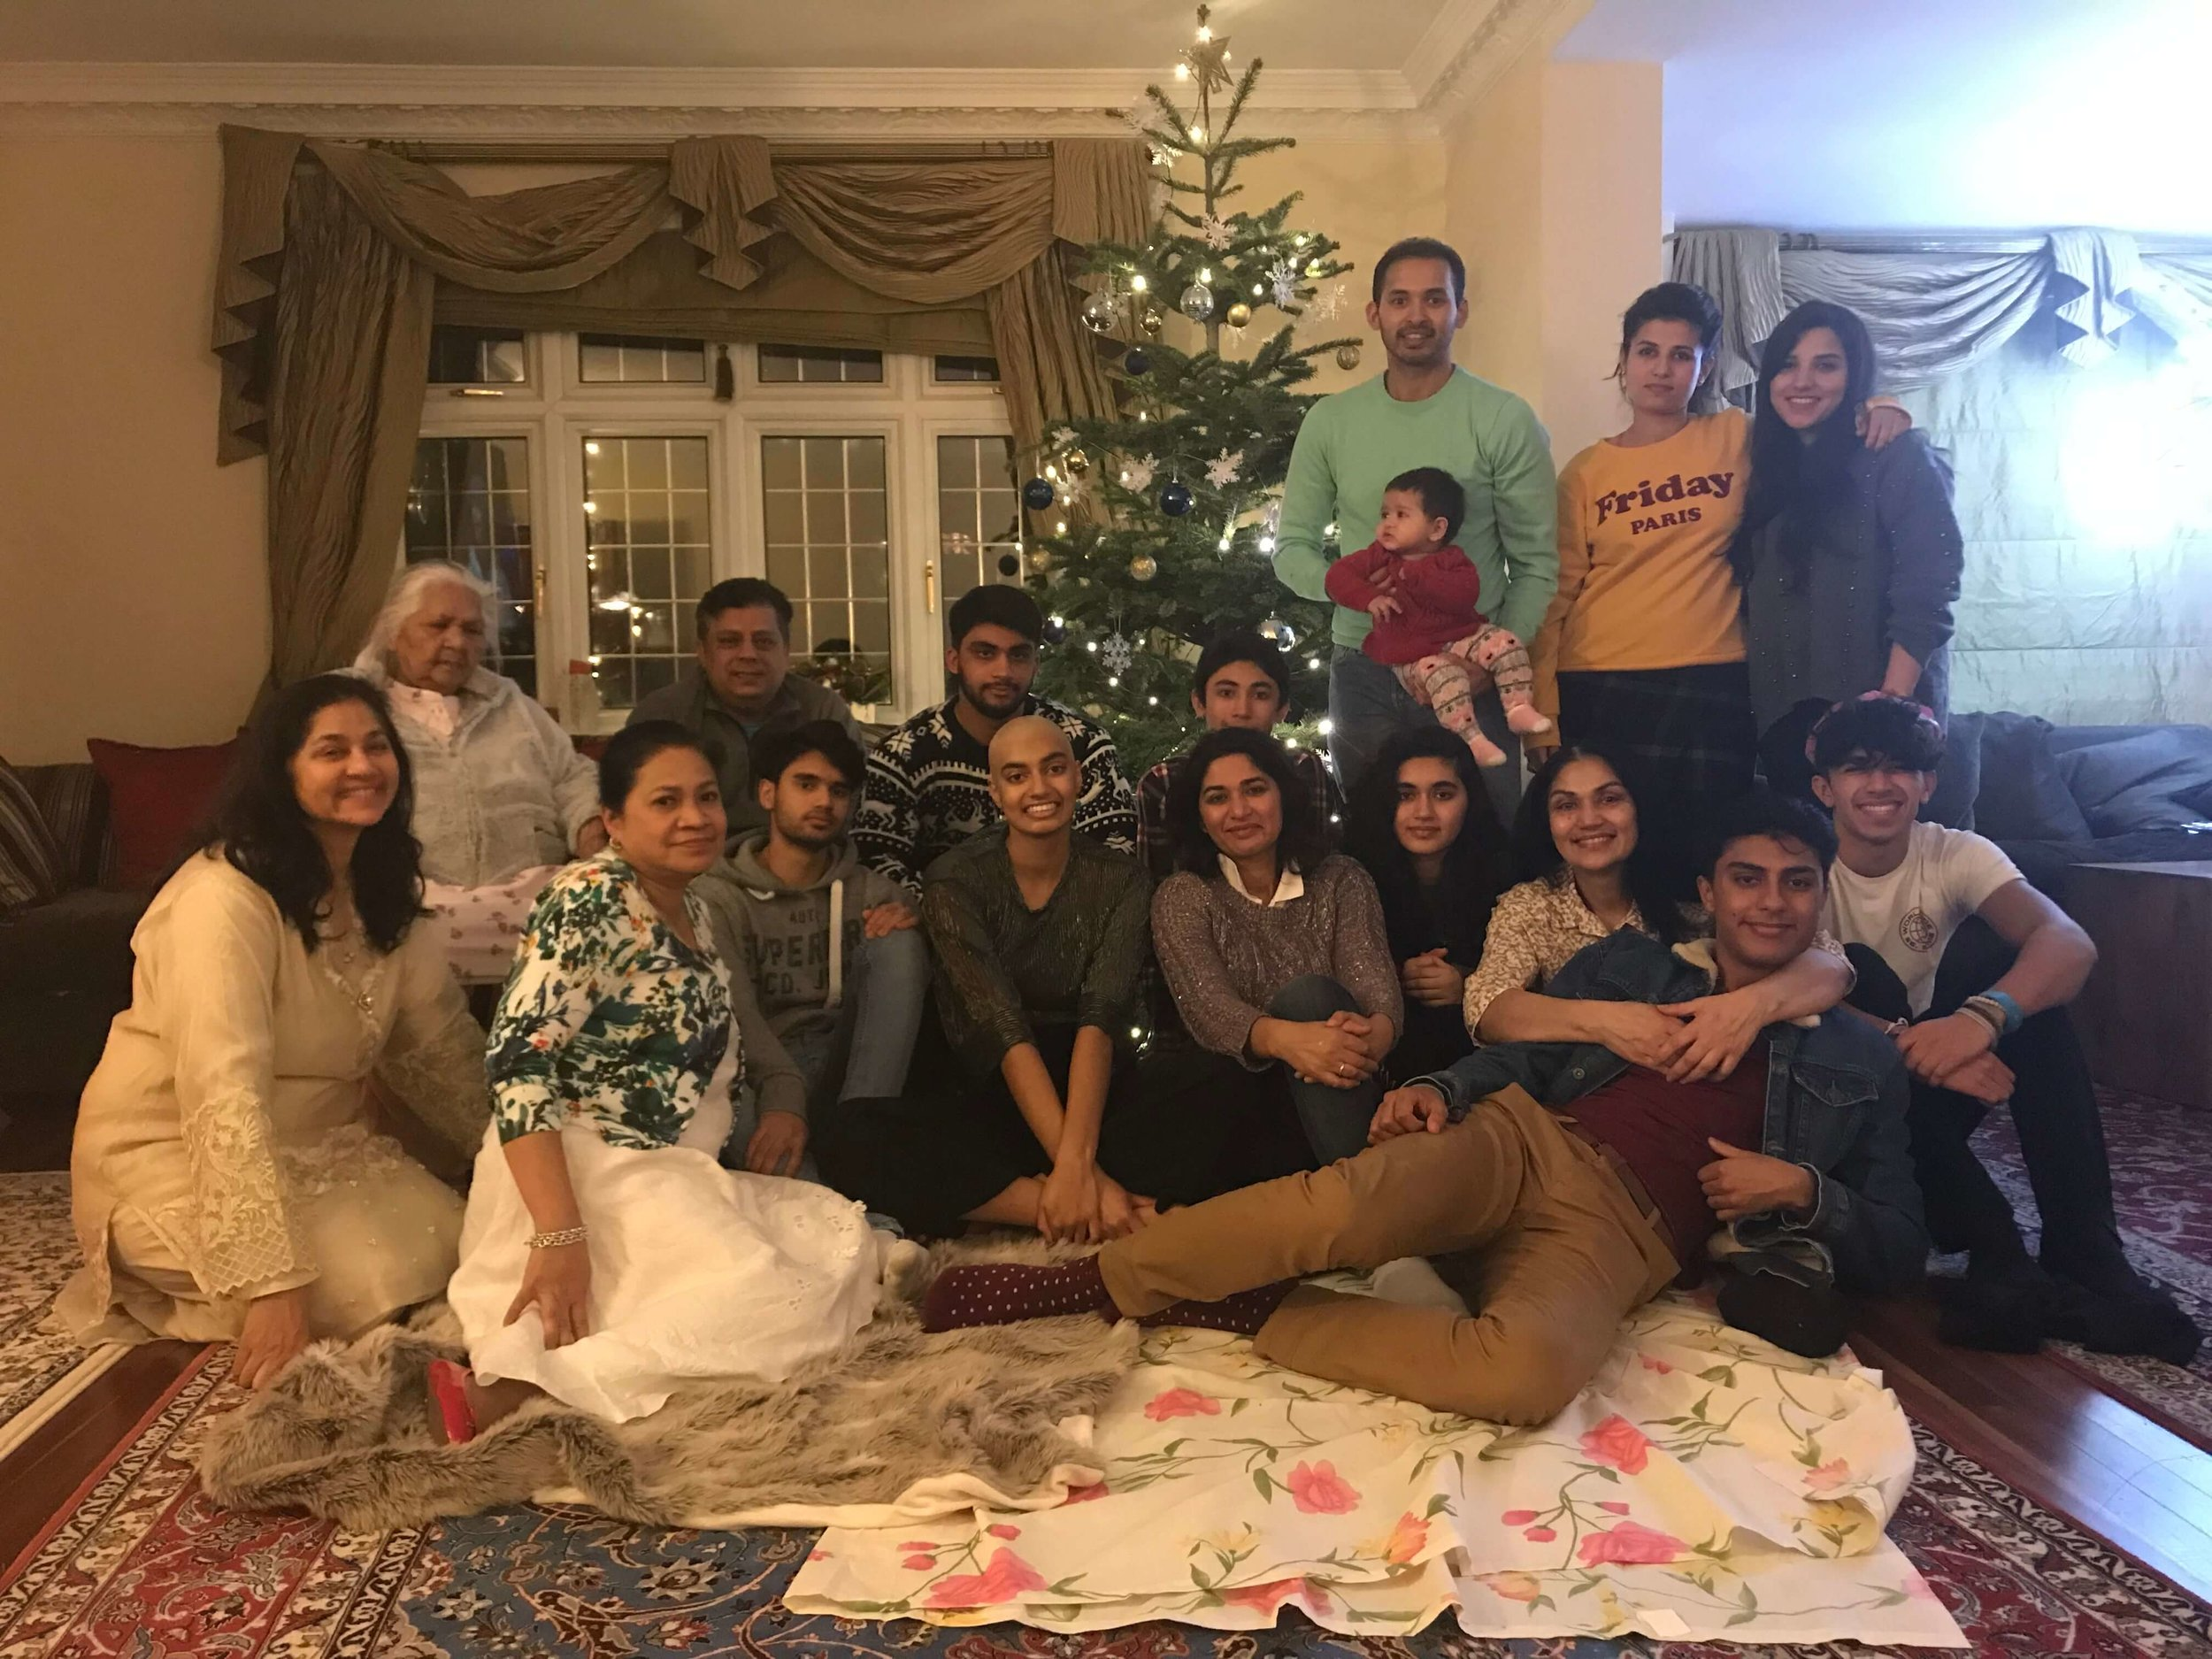 Image courtesy of Ameera | Family Christmas with all the cousins and aunts and uncles that were there for Ameera everyday. (Her dad was away looking after his mum for Christmas Day).